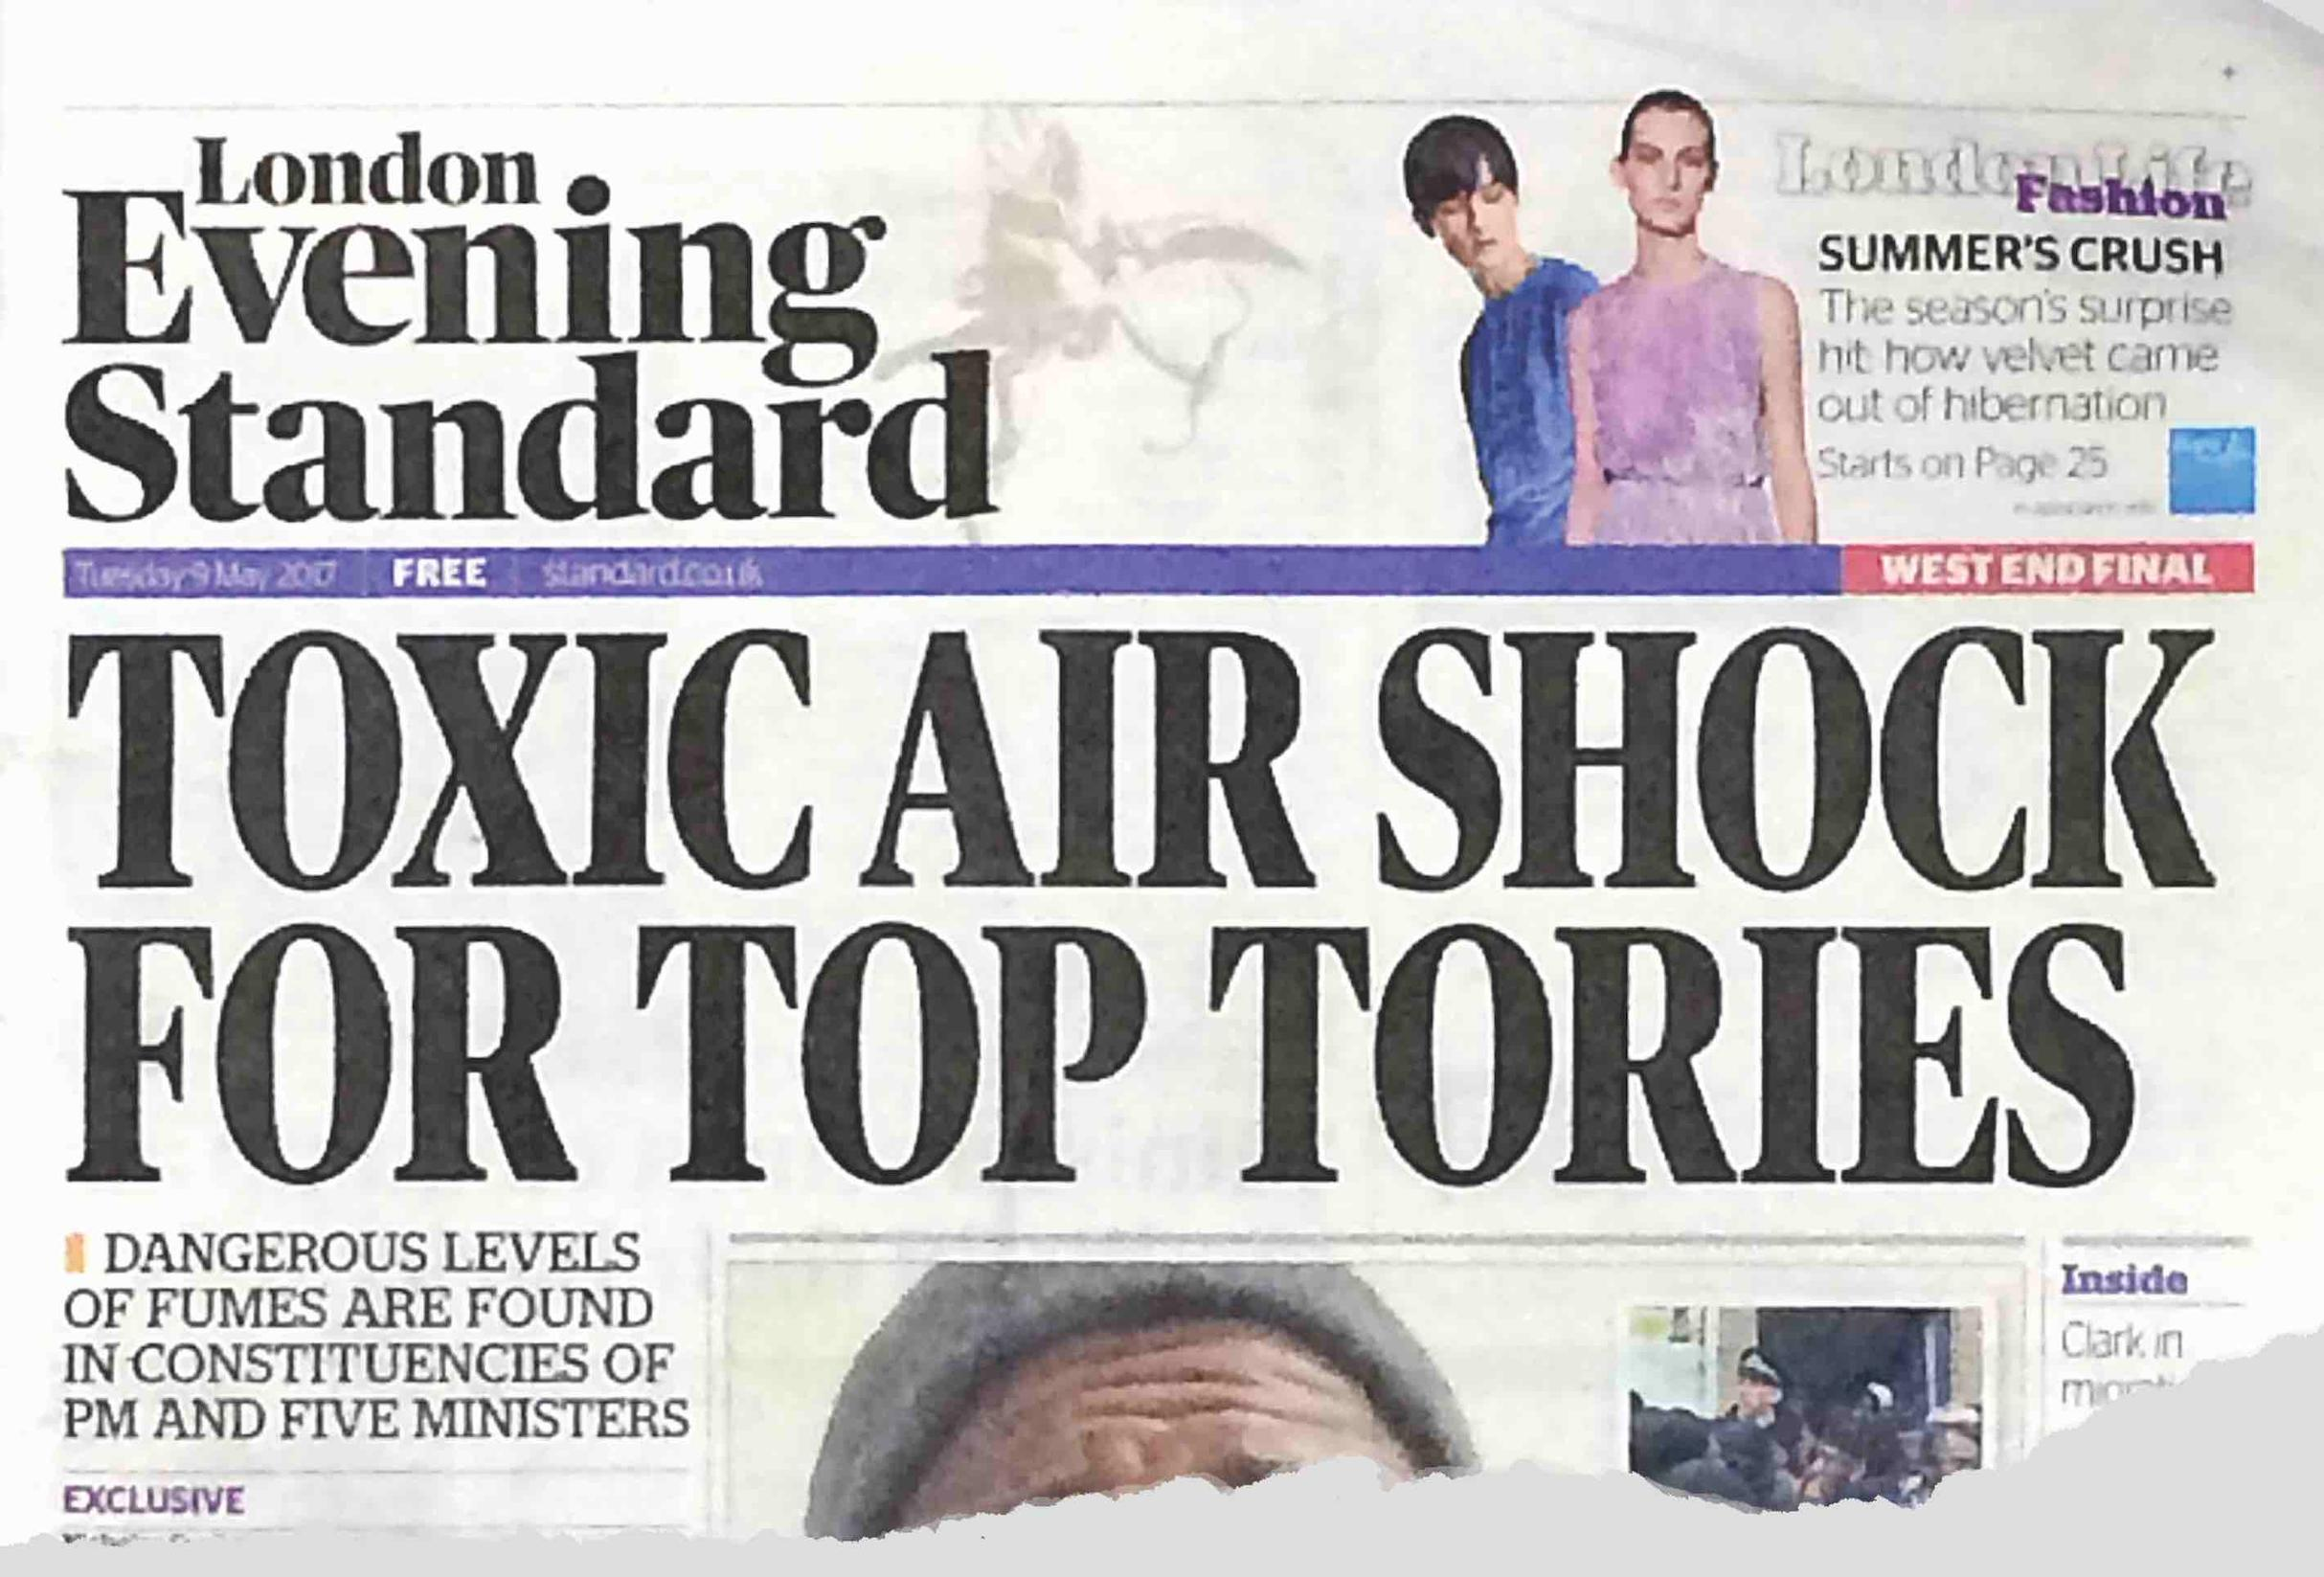 The Evening Standard suggested on 9 May that voters in Conservative constituencies were just as vulnerable to air pollution as anybody else